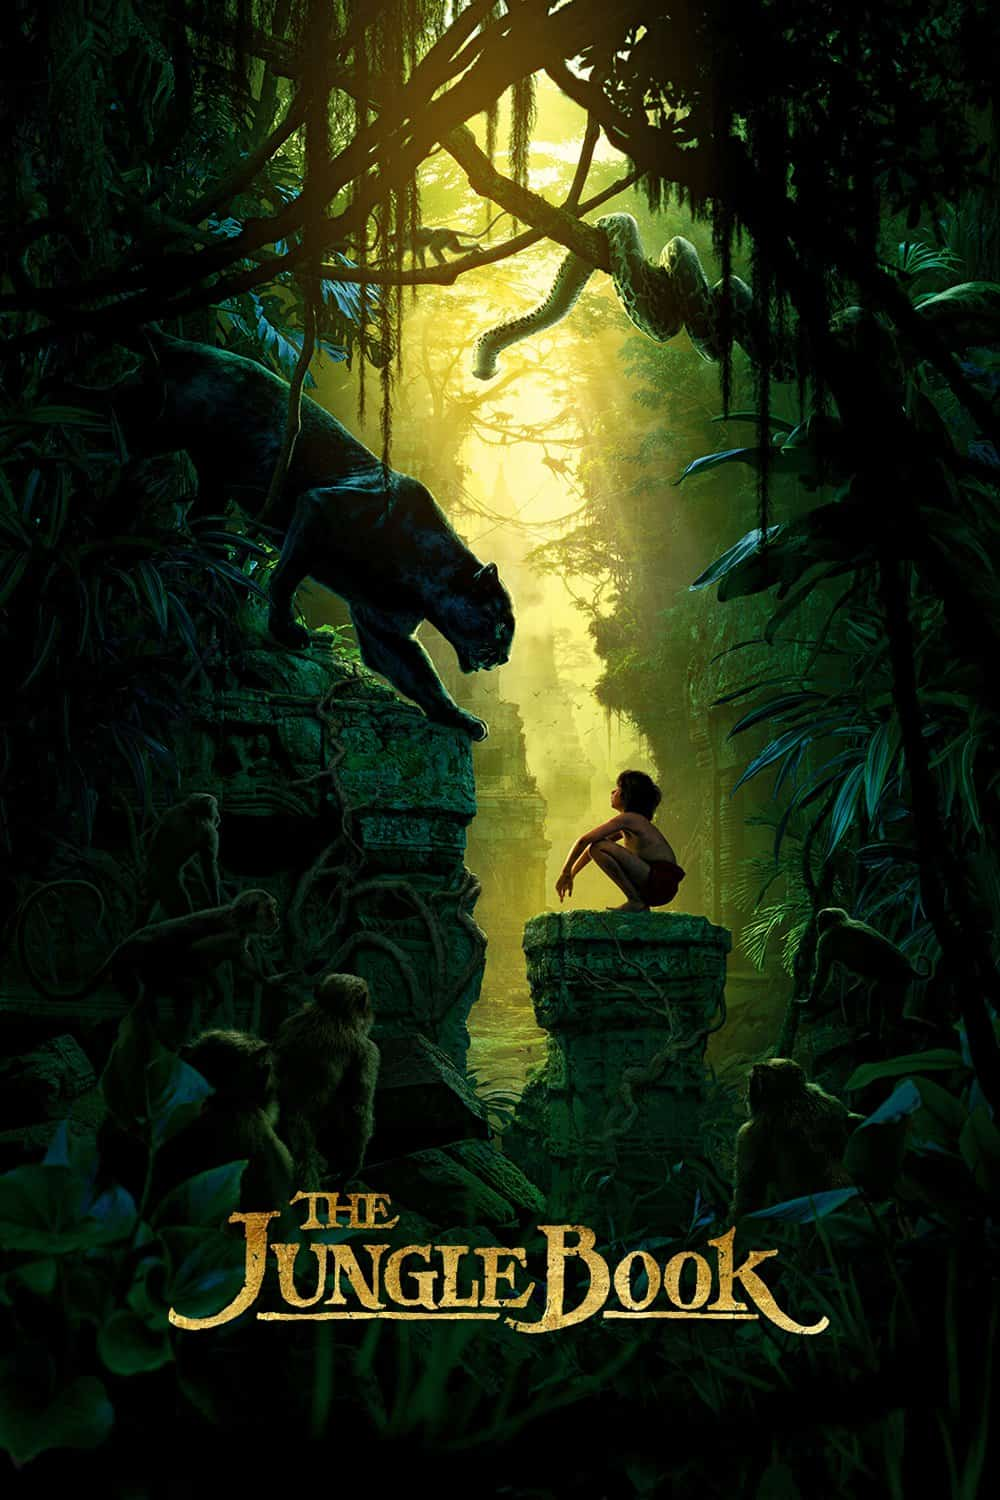 The Jungle Book, 1994